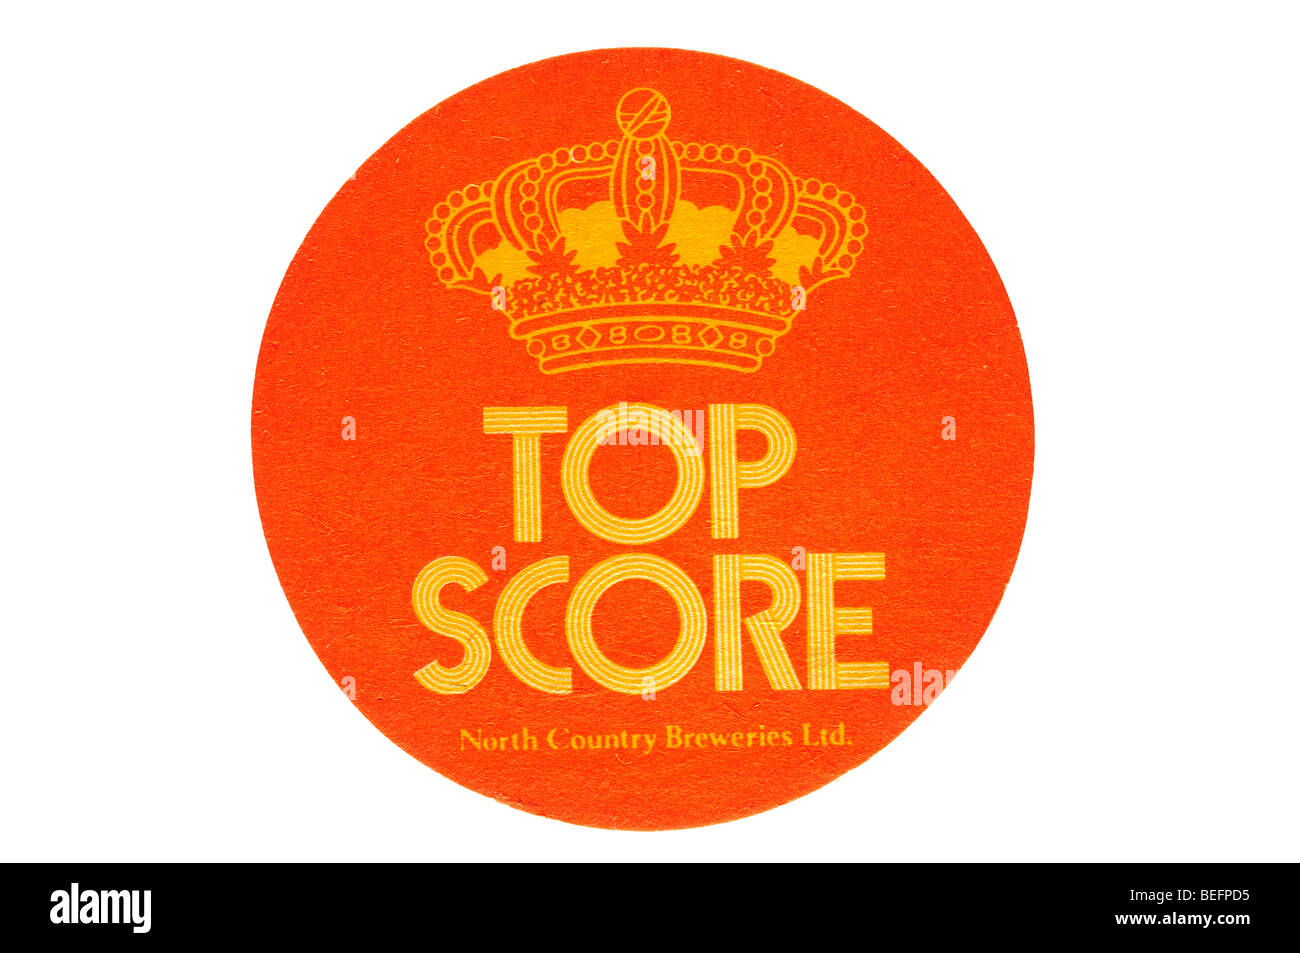 top score north country breweries ltd - Stock Image